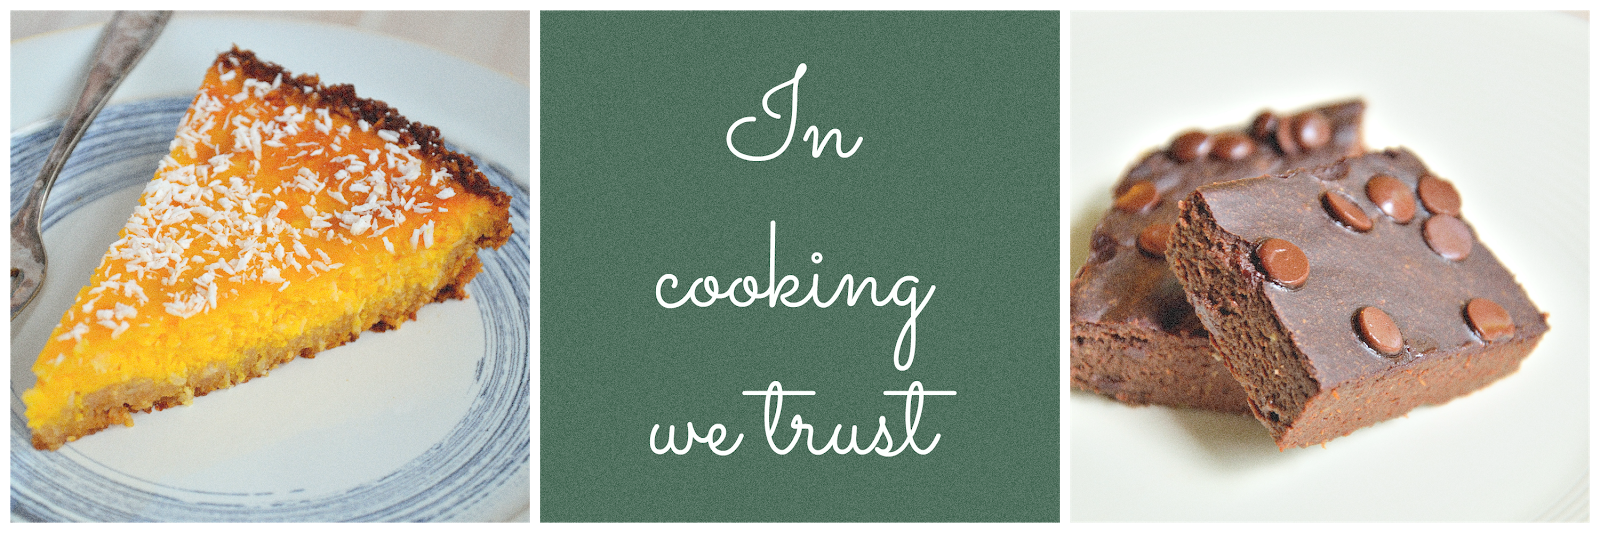 In cooking we trust